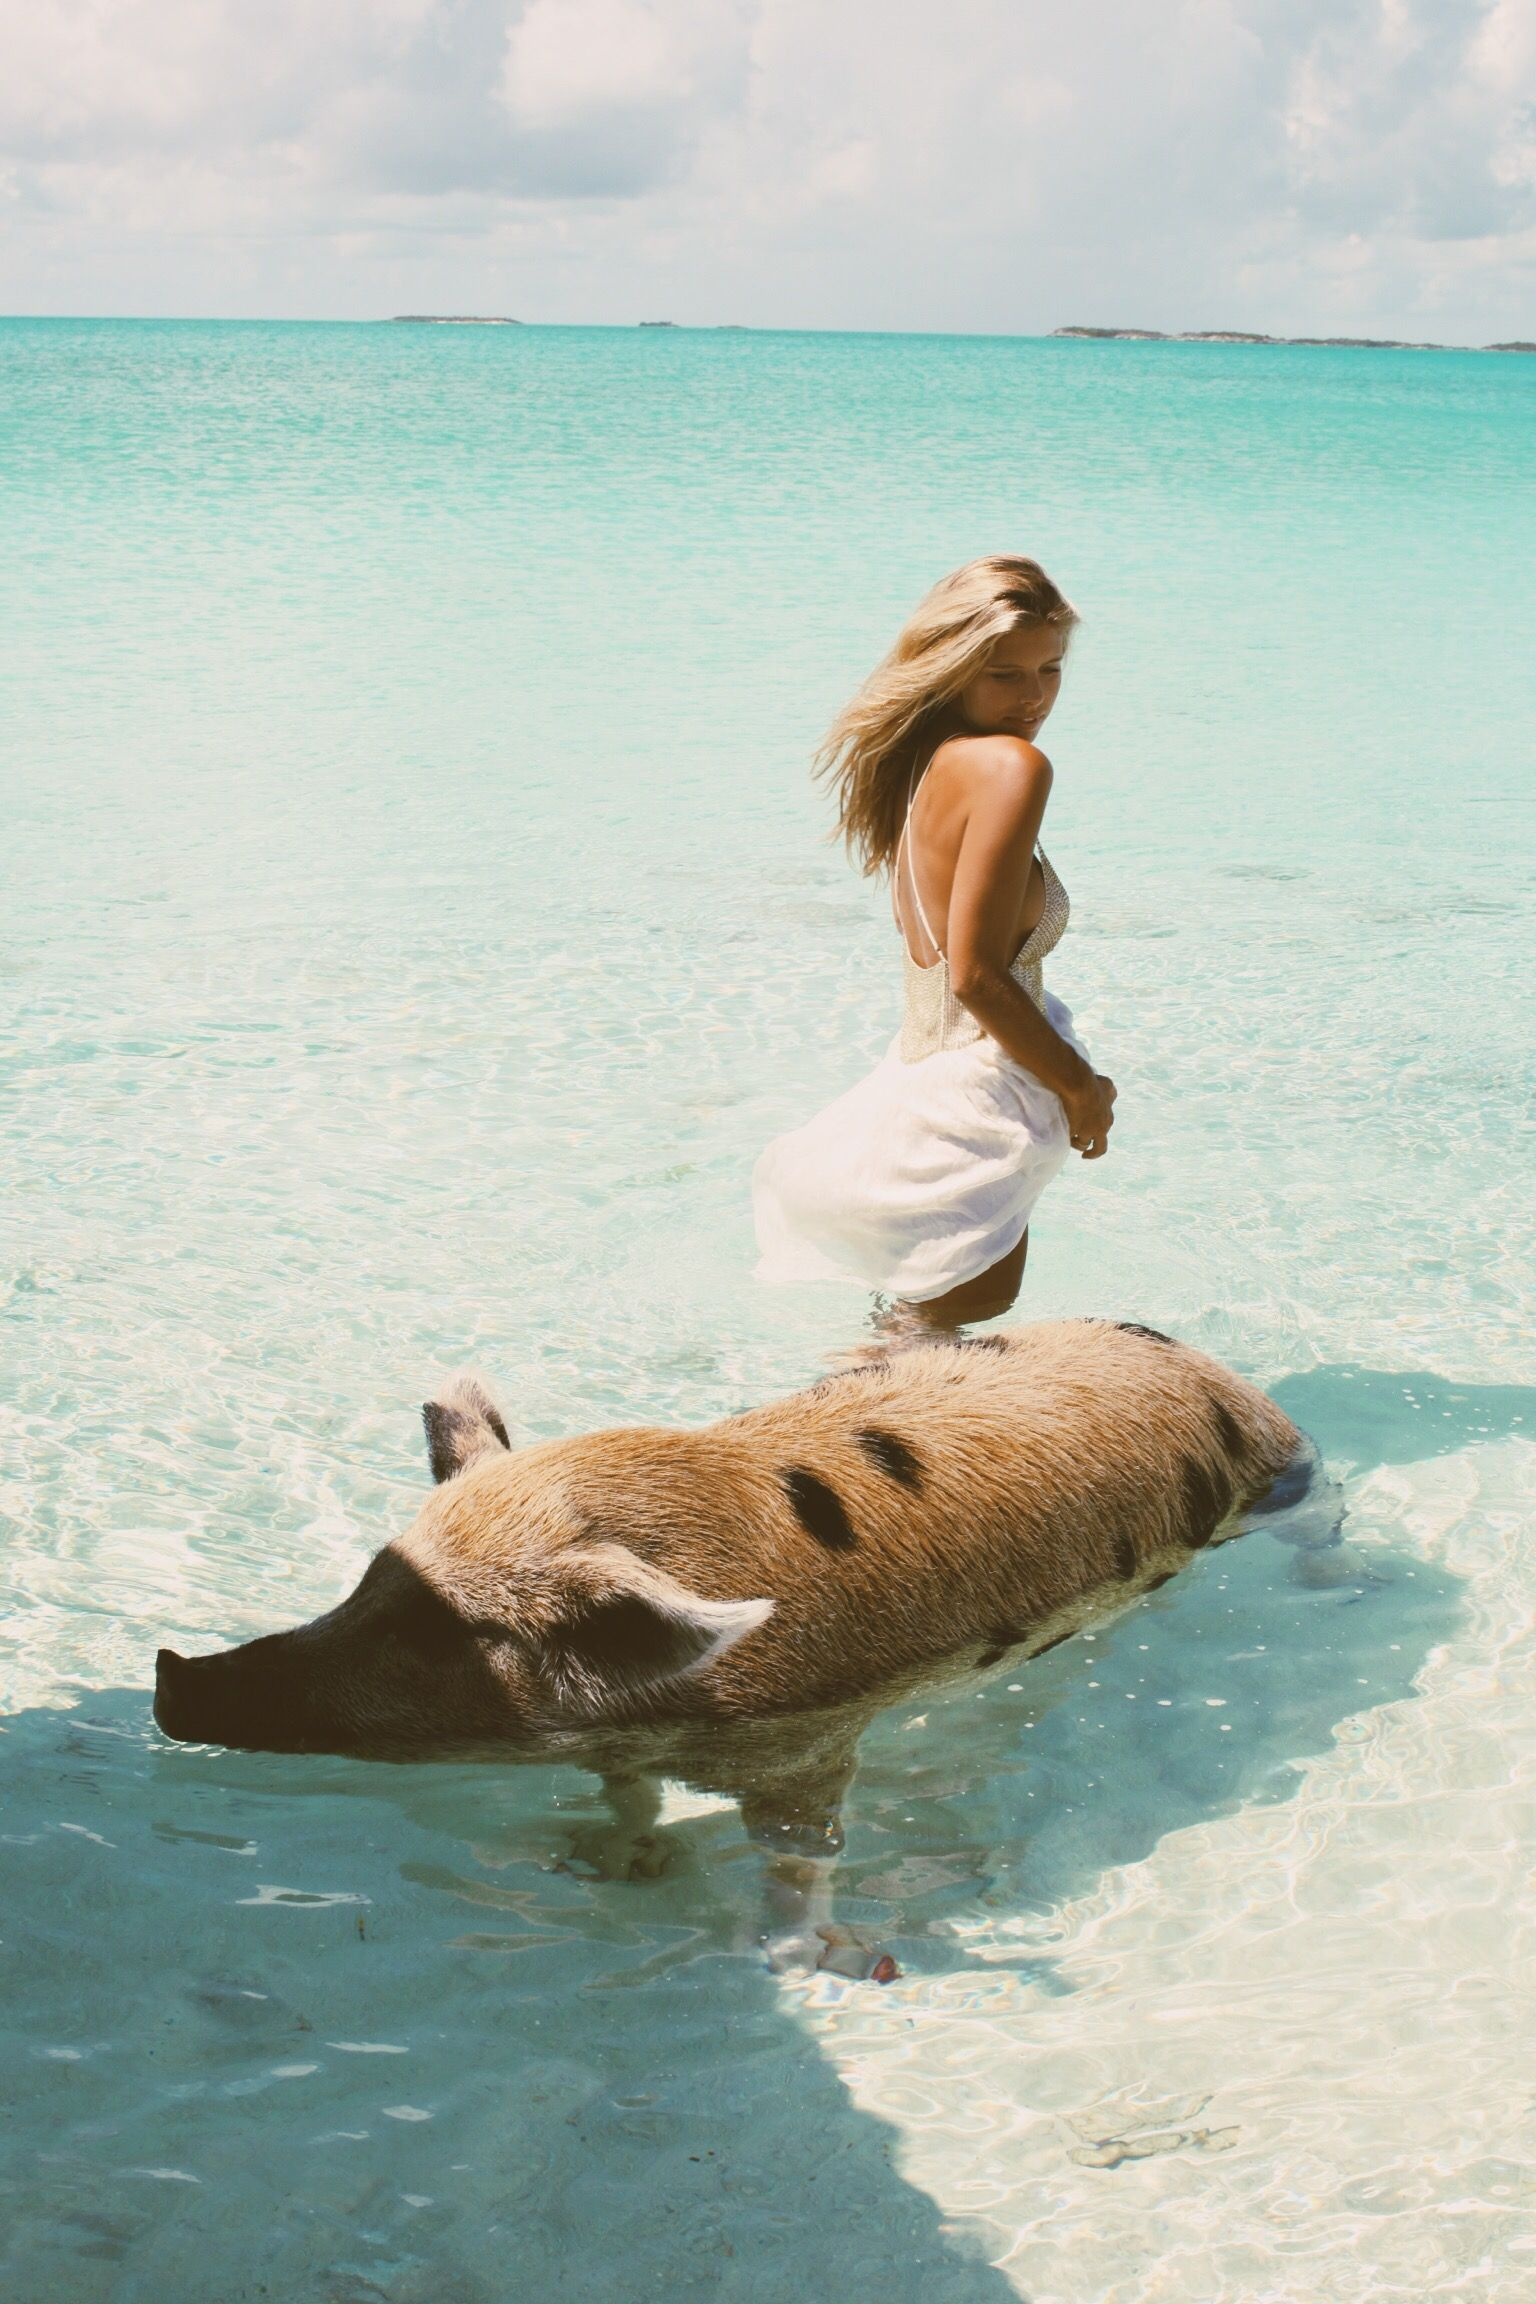 who would know a hairy pig would steal the show over a pretty model? He sure is a good swimmer :)